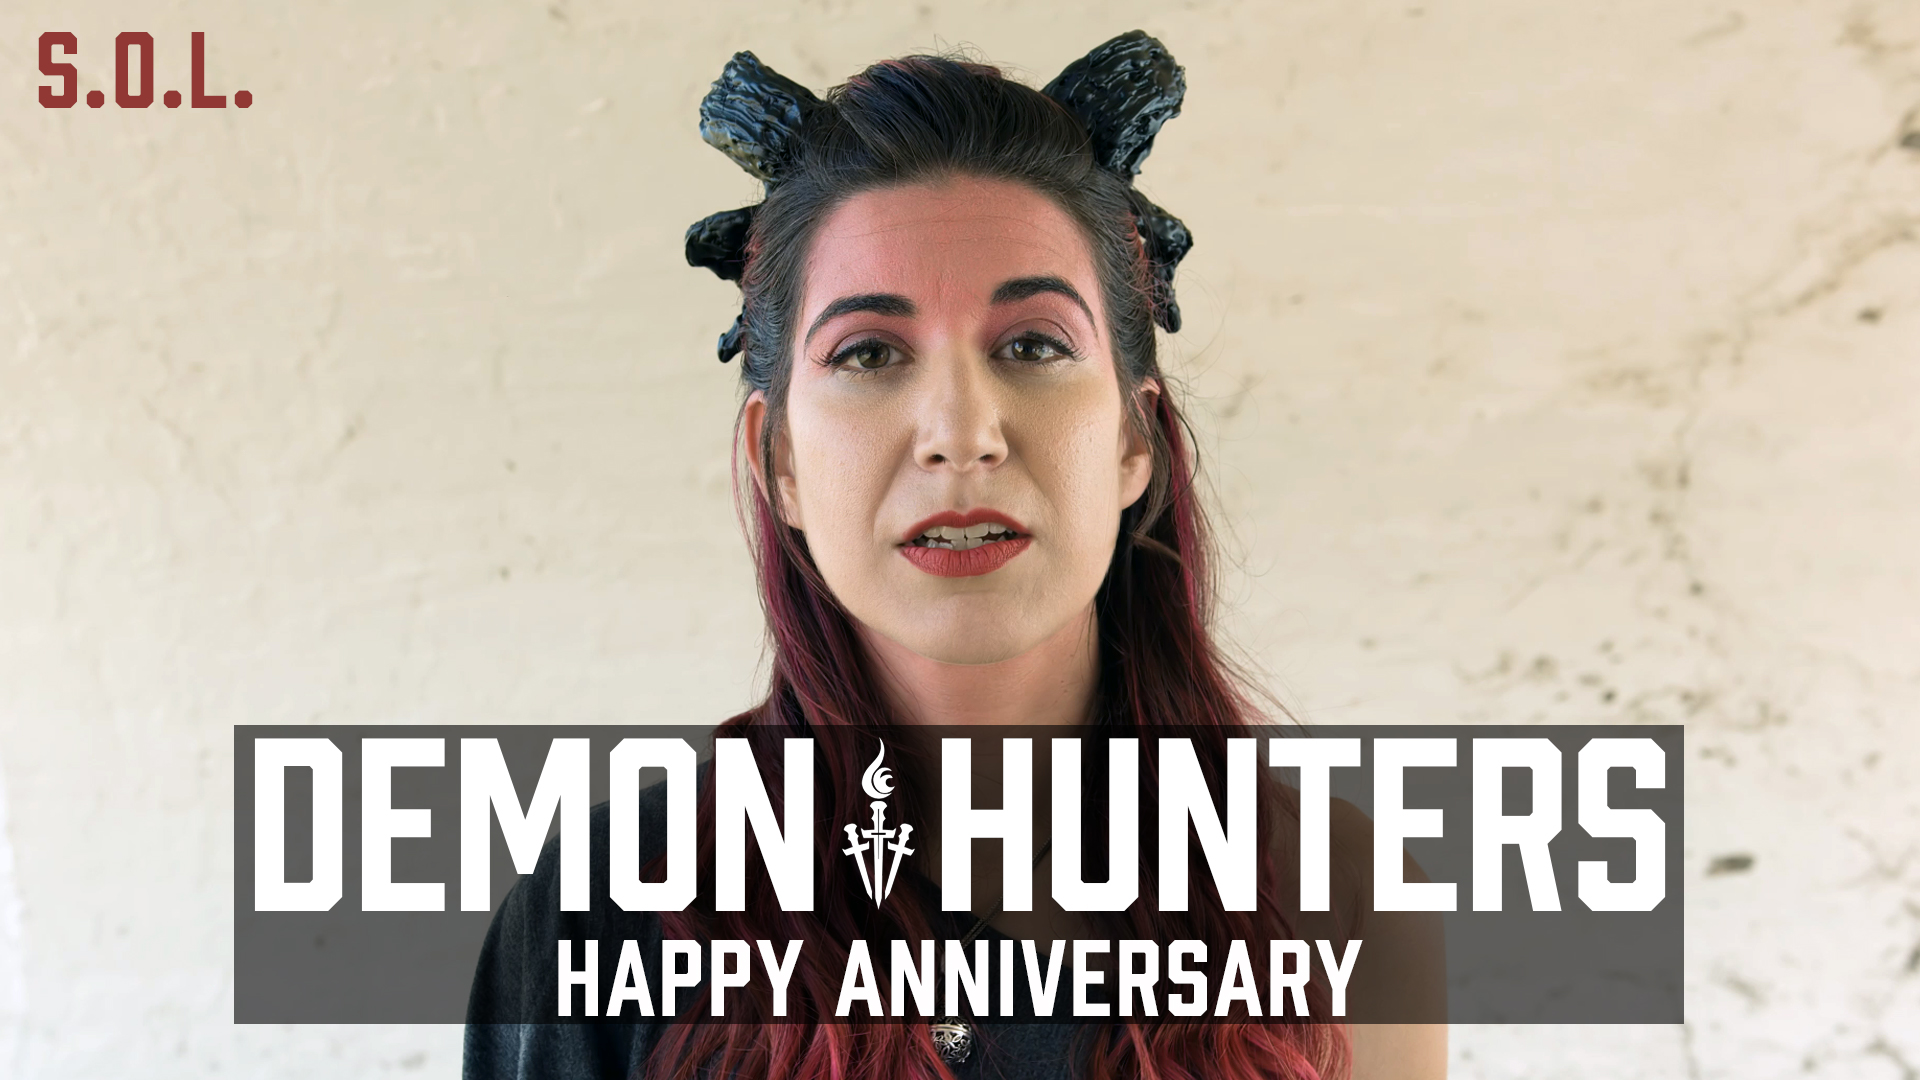 Demon Hunters: Happy Anniversary